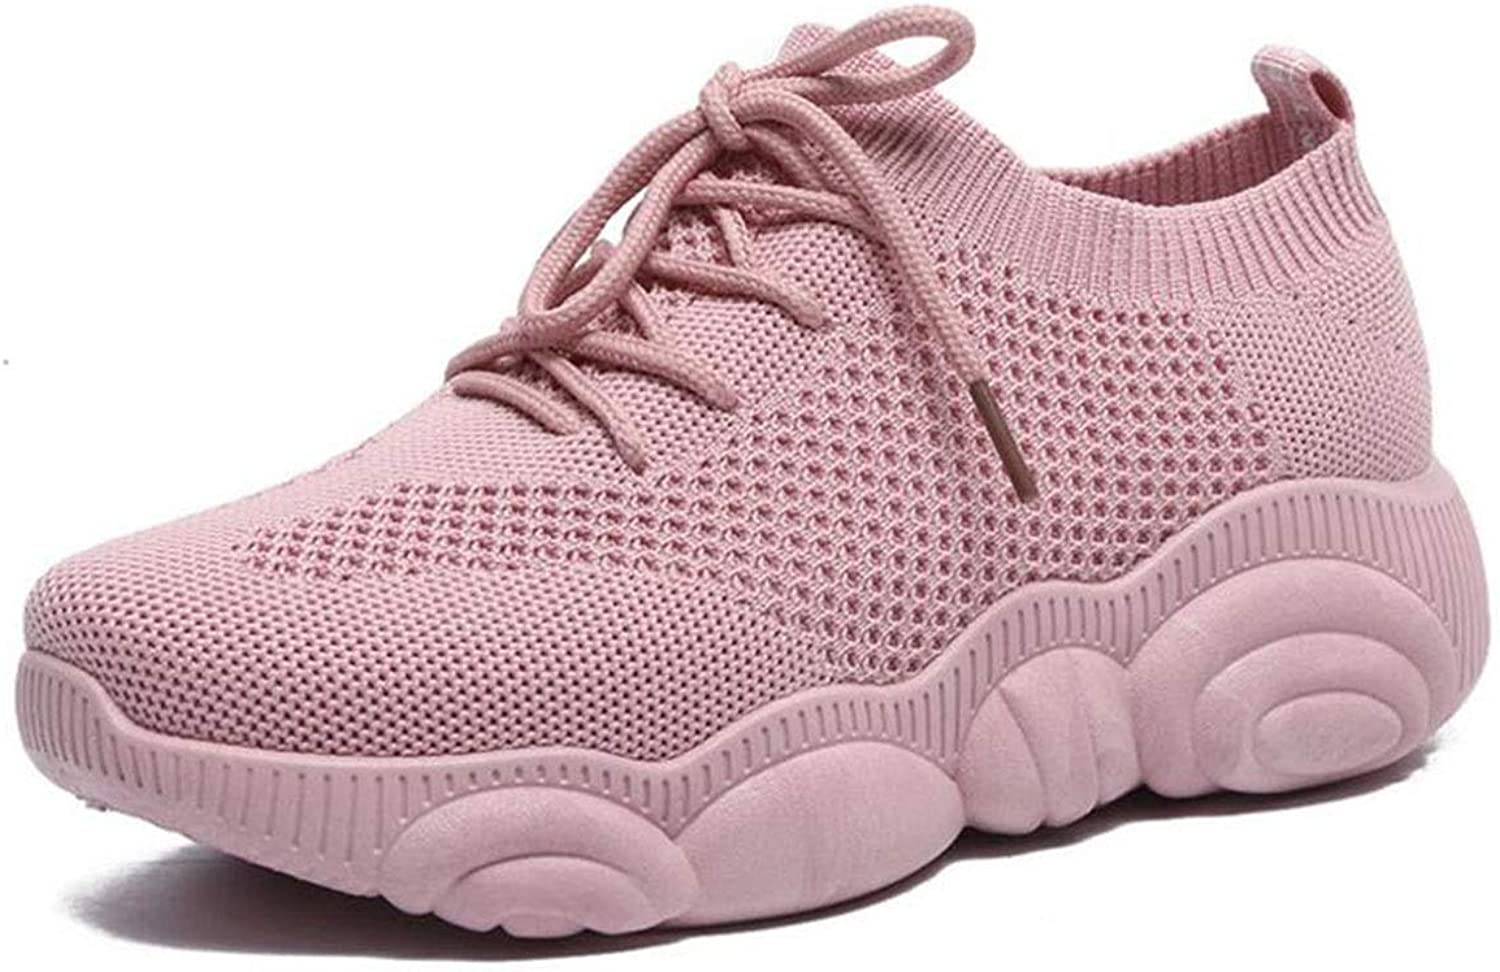 Running shoes for Women Super Lightweight Breathable Slip on Trainers for Casual shoes Women Air Running shoes Shock Absorbing Sneakers (color   Red, Size   8 US)